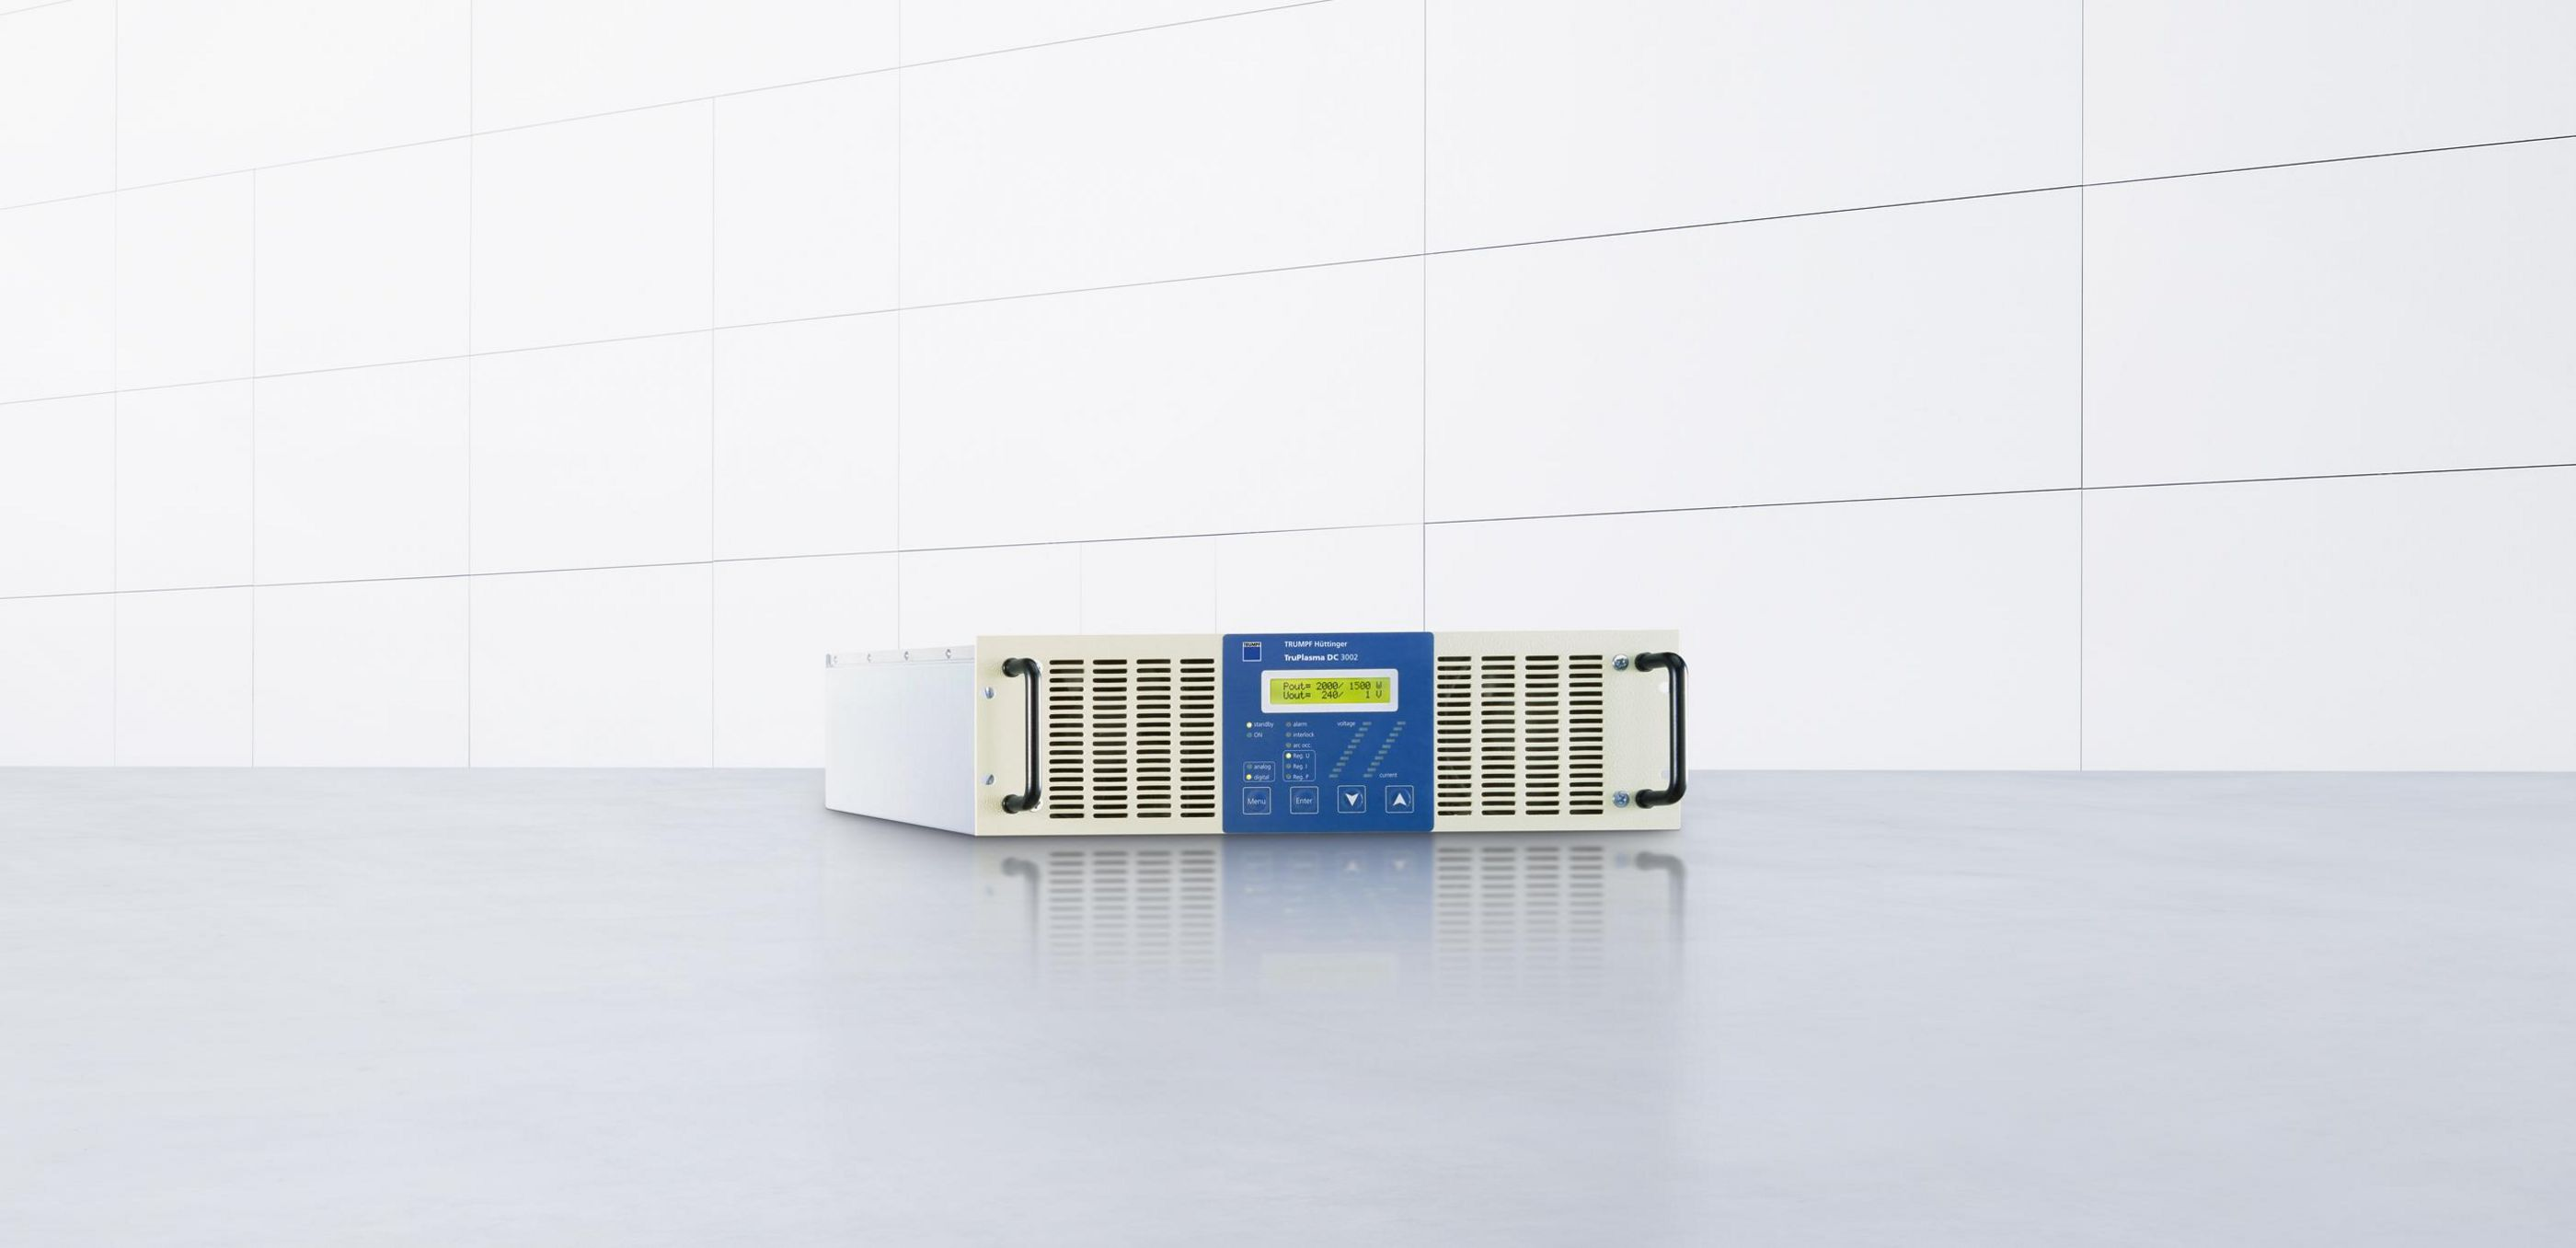 Direct current generator for demanding plasma processes: TruPlasma DC 3010